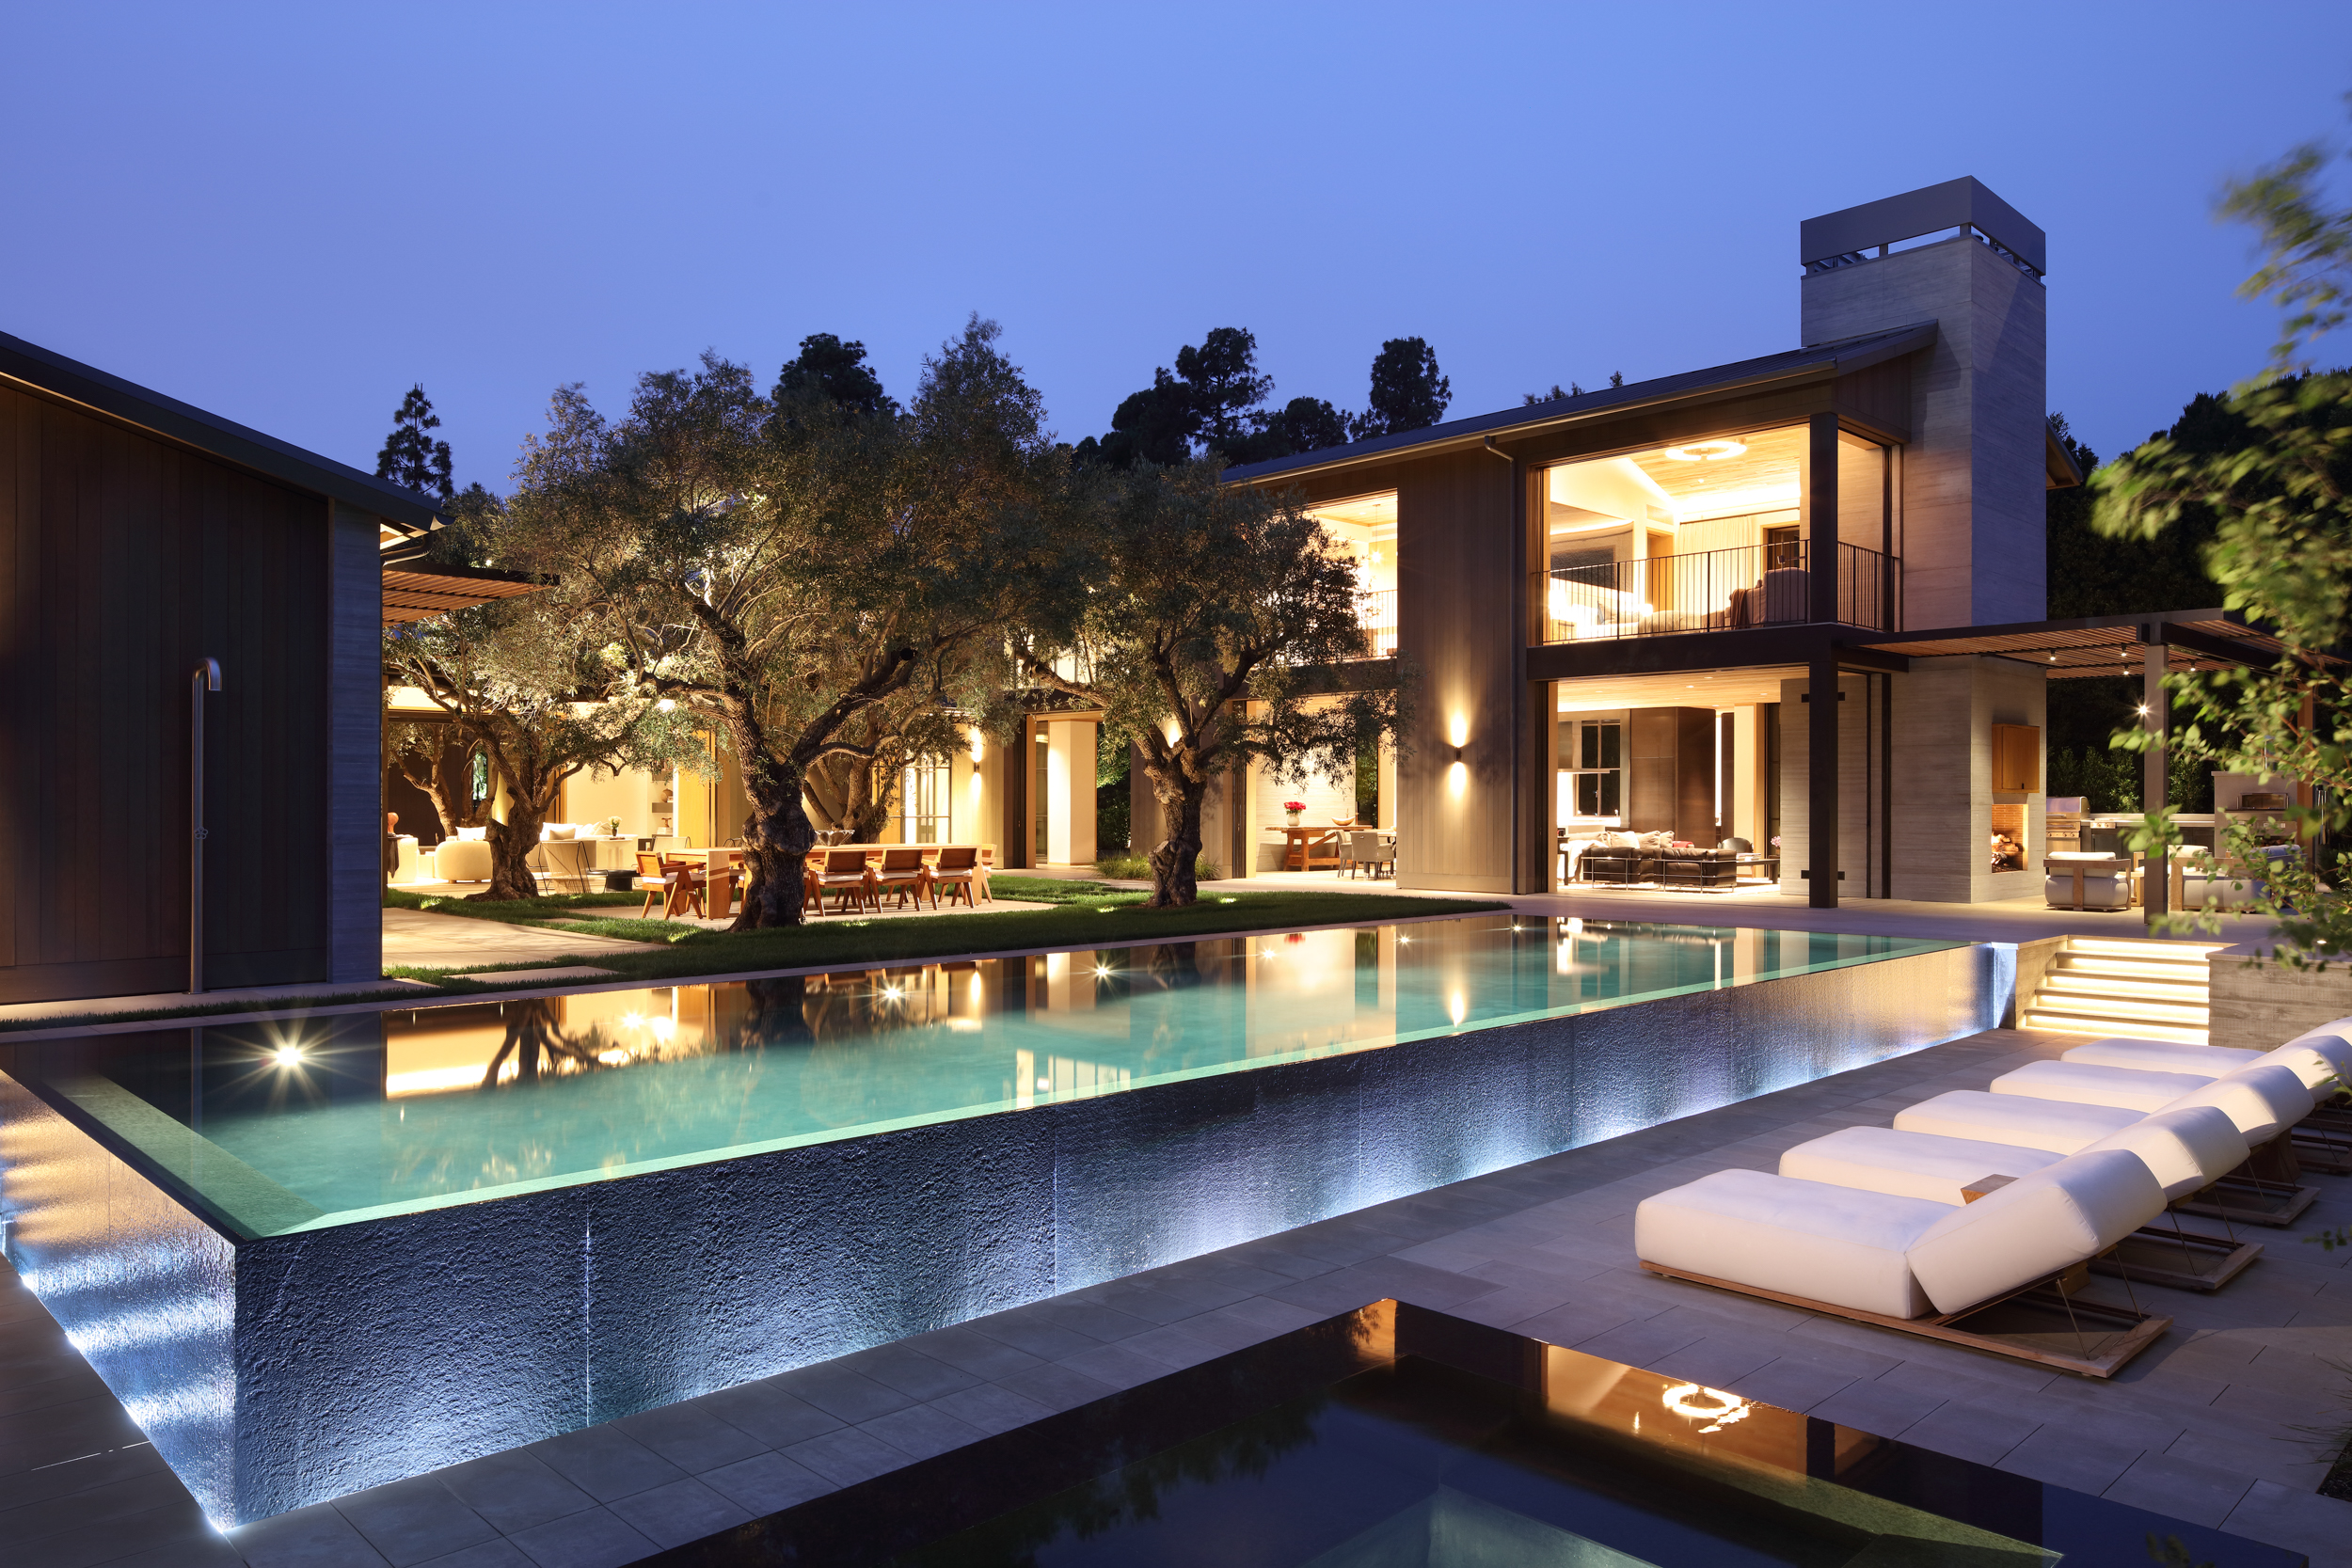 infinity pool and surrounding courtyard at dusk with lounge chairs